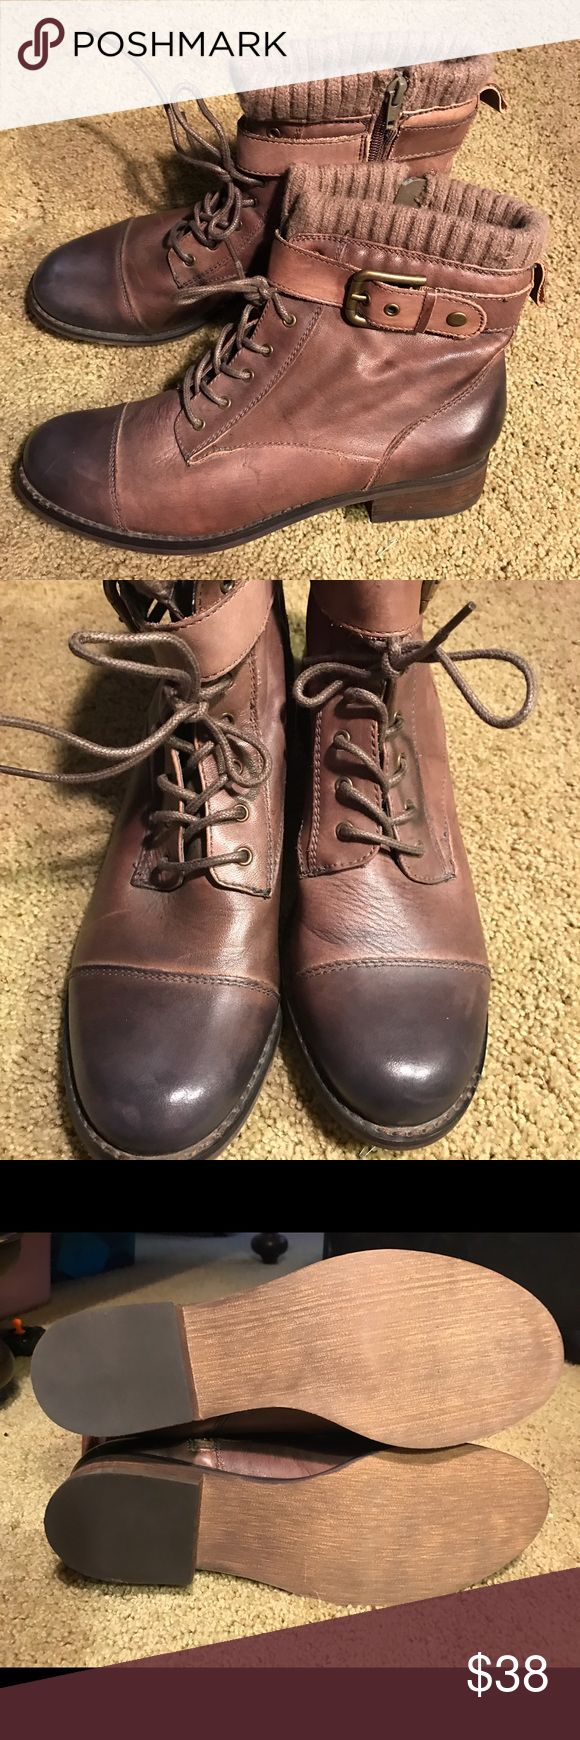 Cute ankle boots Brown leather lace ups with buckles on the side.... never worn. Arturo Chiang Shoes Ankle Boots & Booties